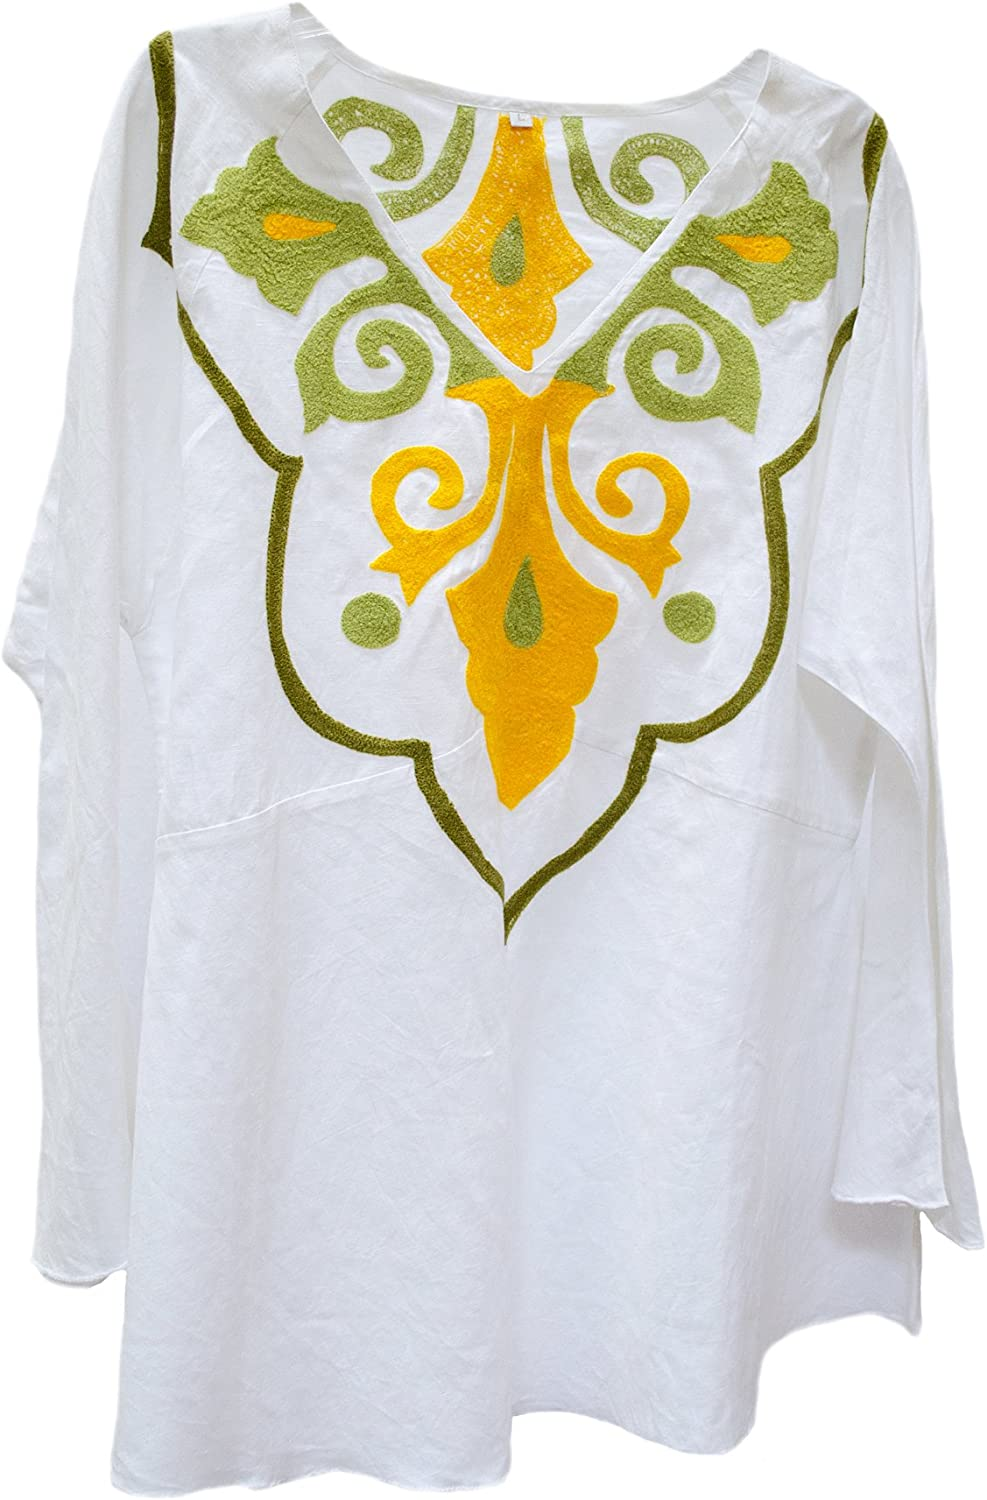 Steel Paisley Marrakech Suzani Embroidered Linen Tunic Top Shirt White Yellow Olive Green L XL